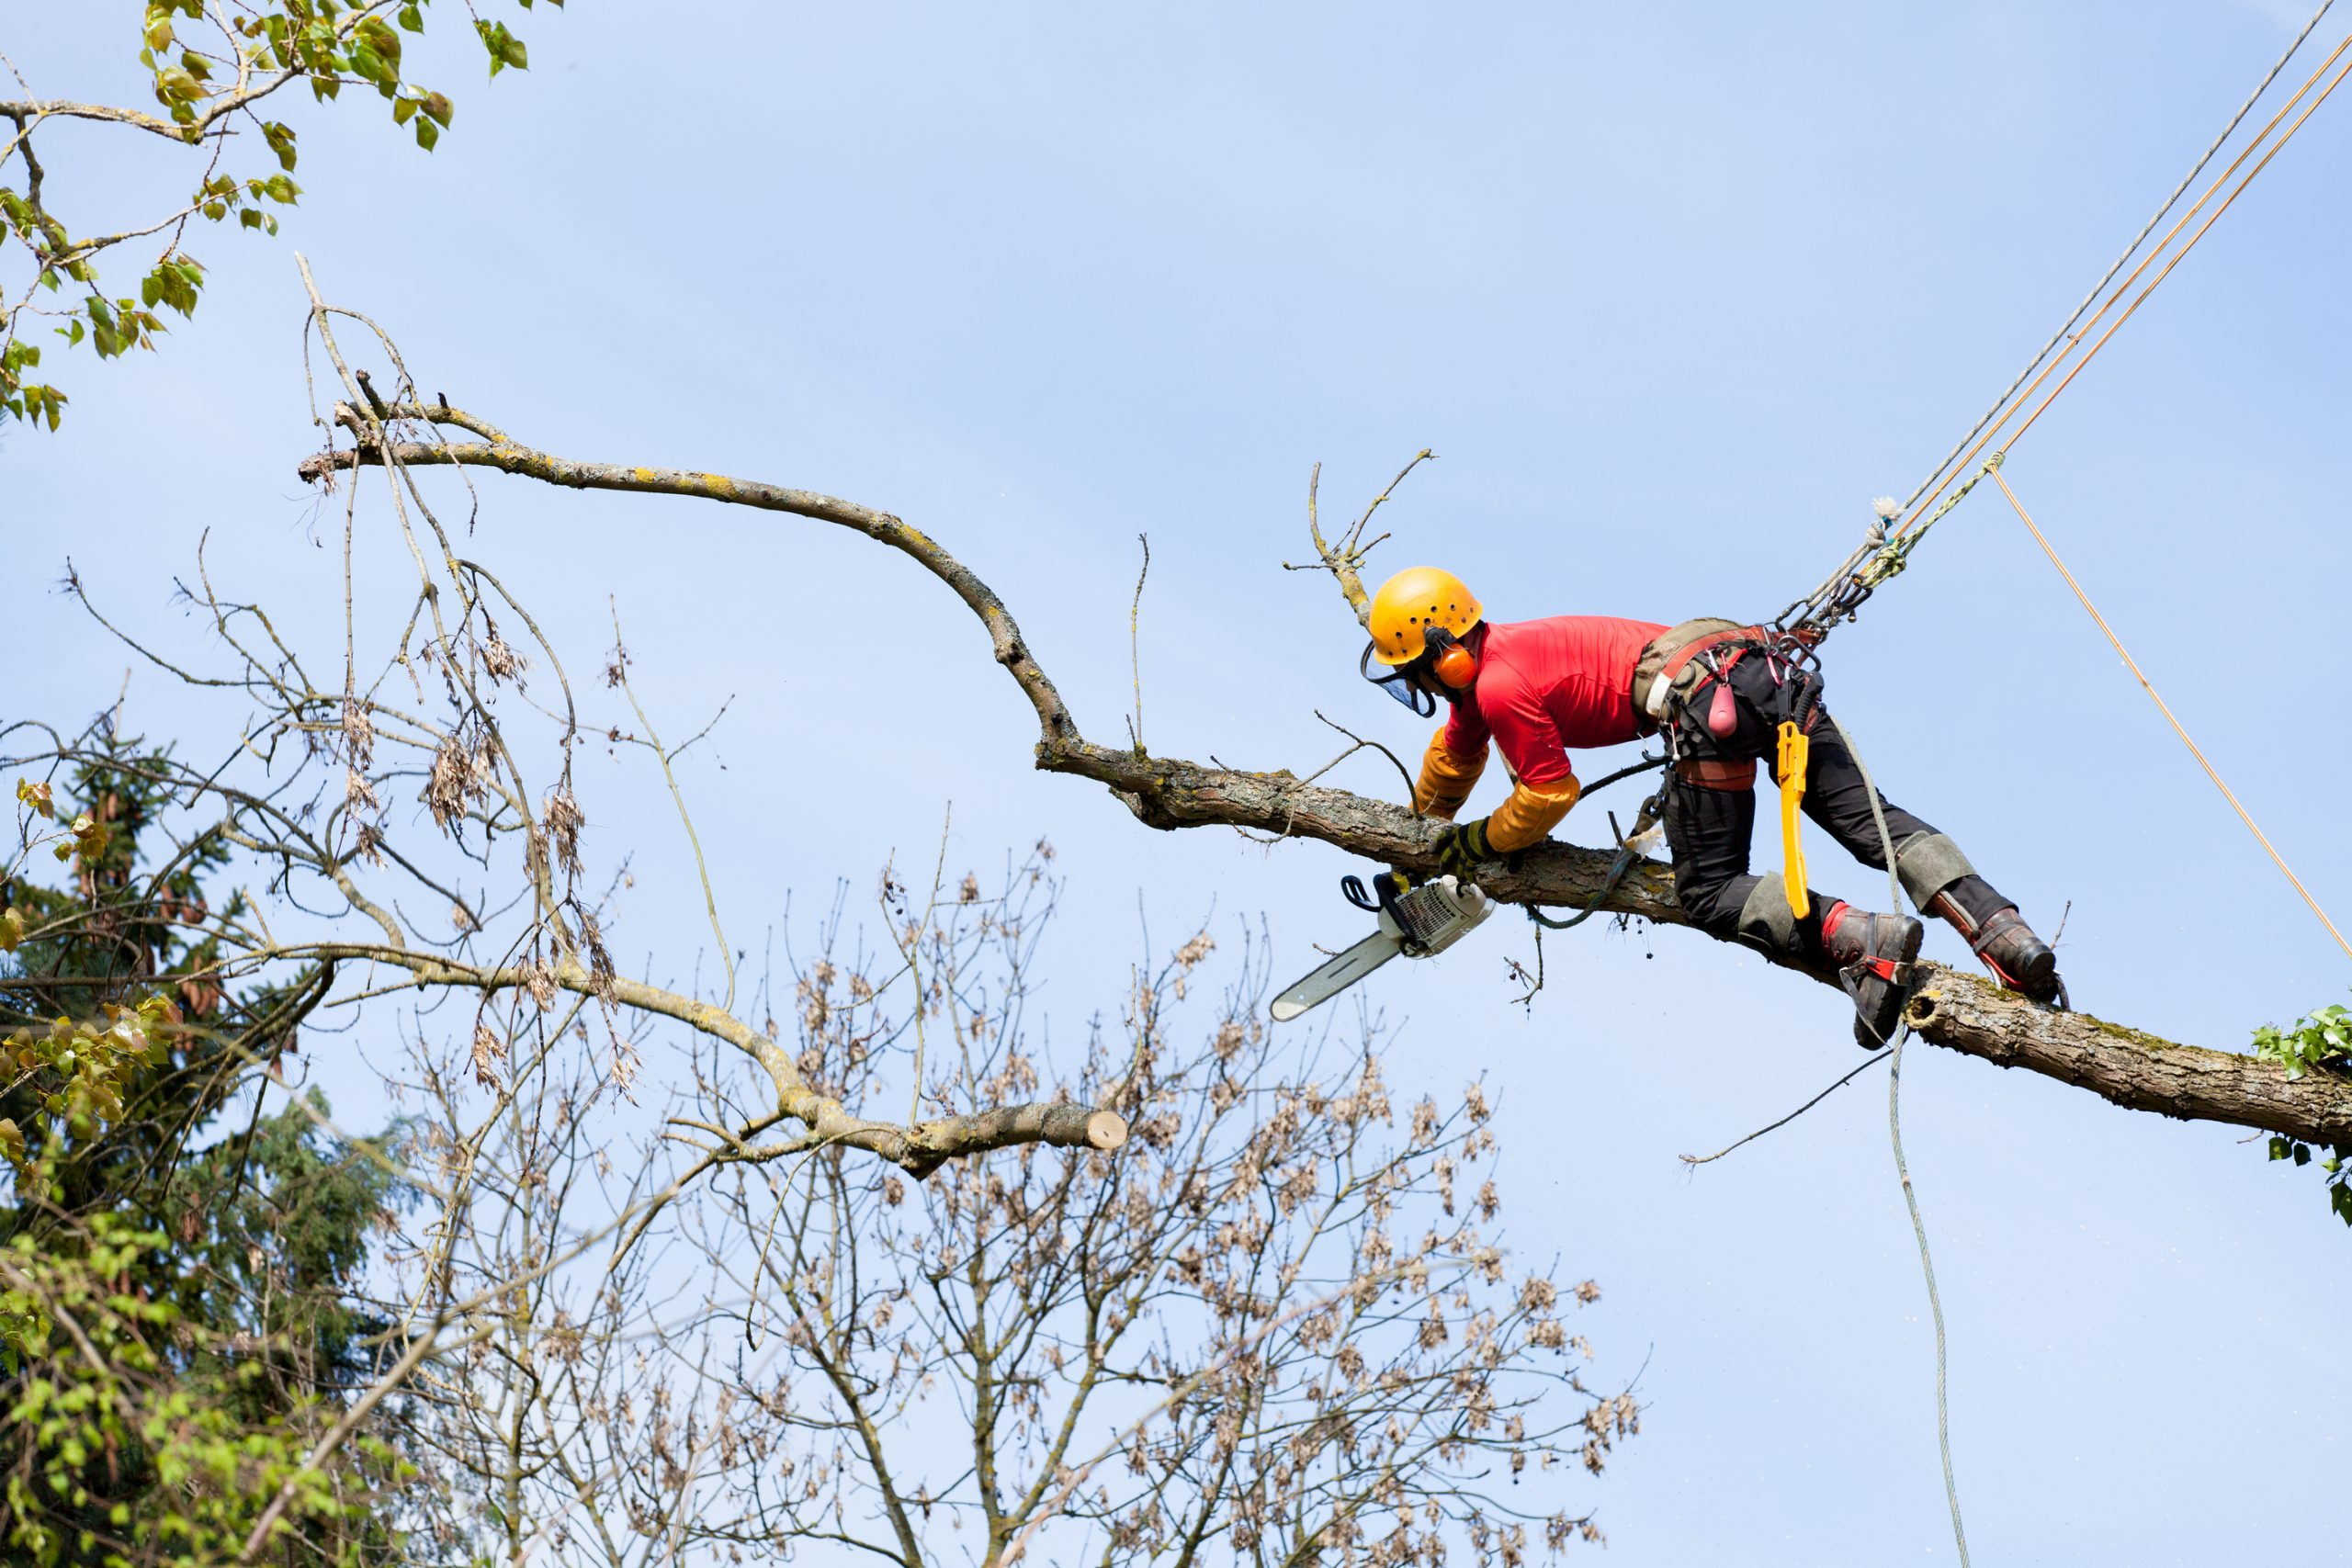 An arborist cutting a tree with a chainsaw. Thinking of becoming an arborist?